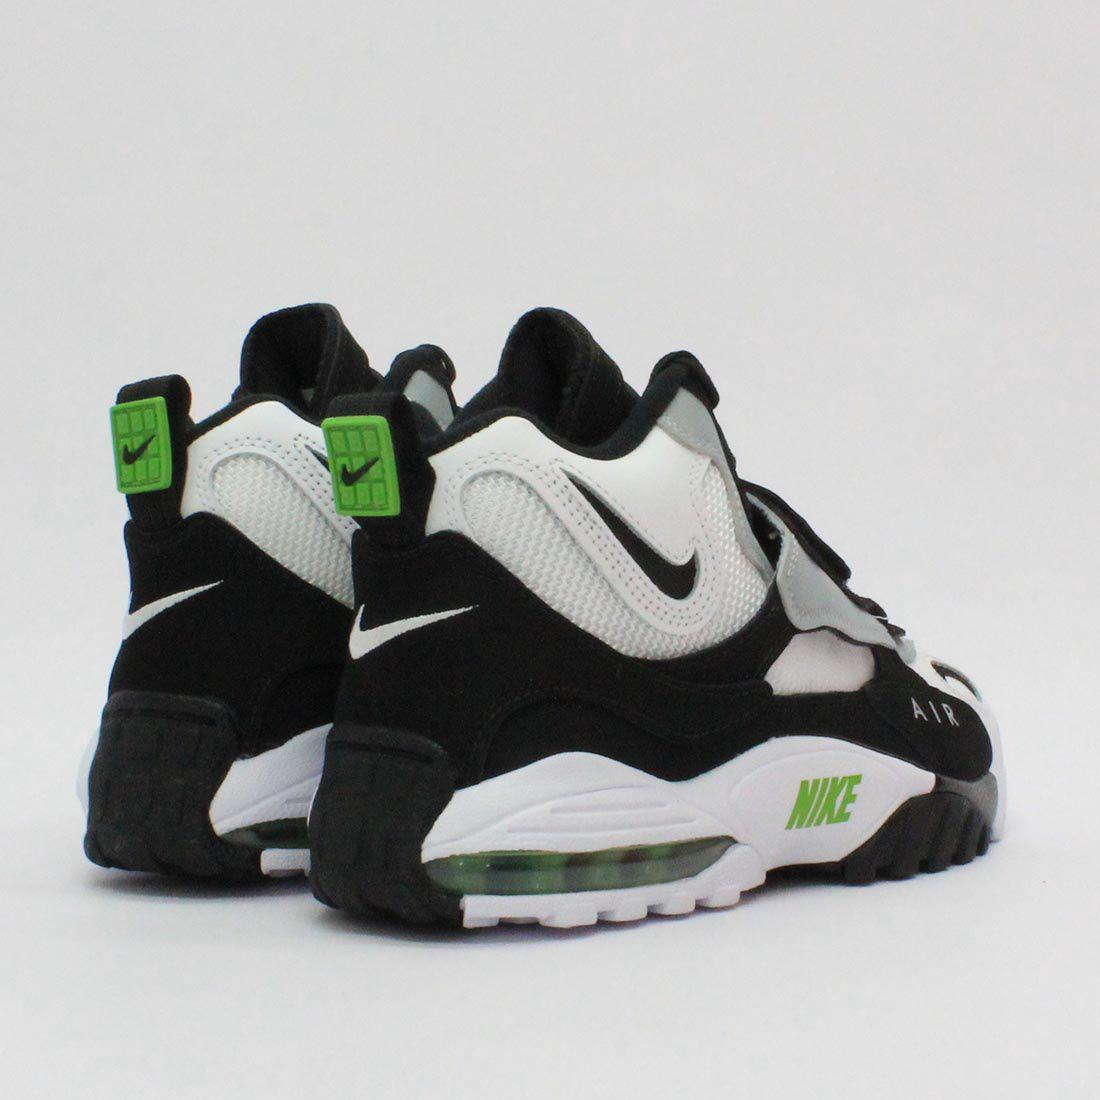 quality design 0ebf2 d0a1b Nike Trainers - Multicolor Nike Air Max Speed Turf White 525225 103 for Men  - Lyst. View fullscreen